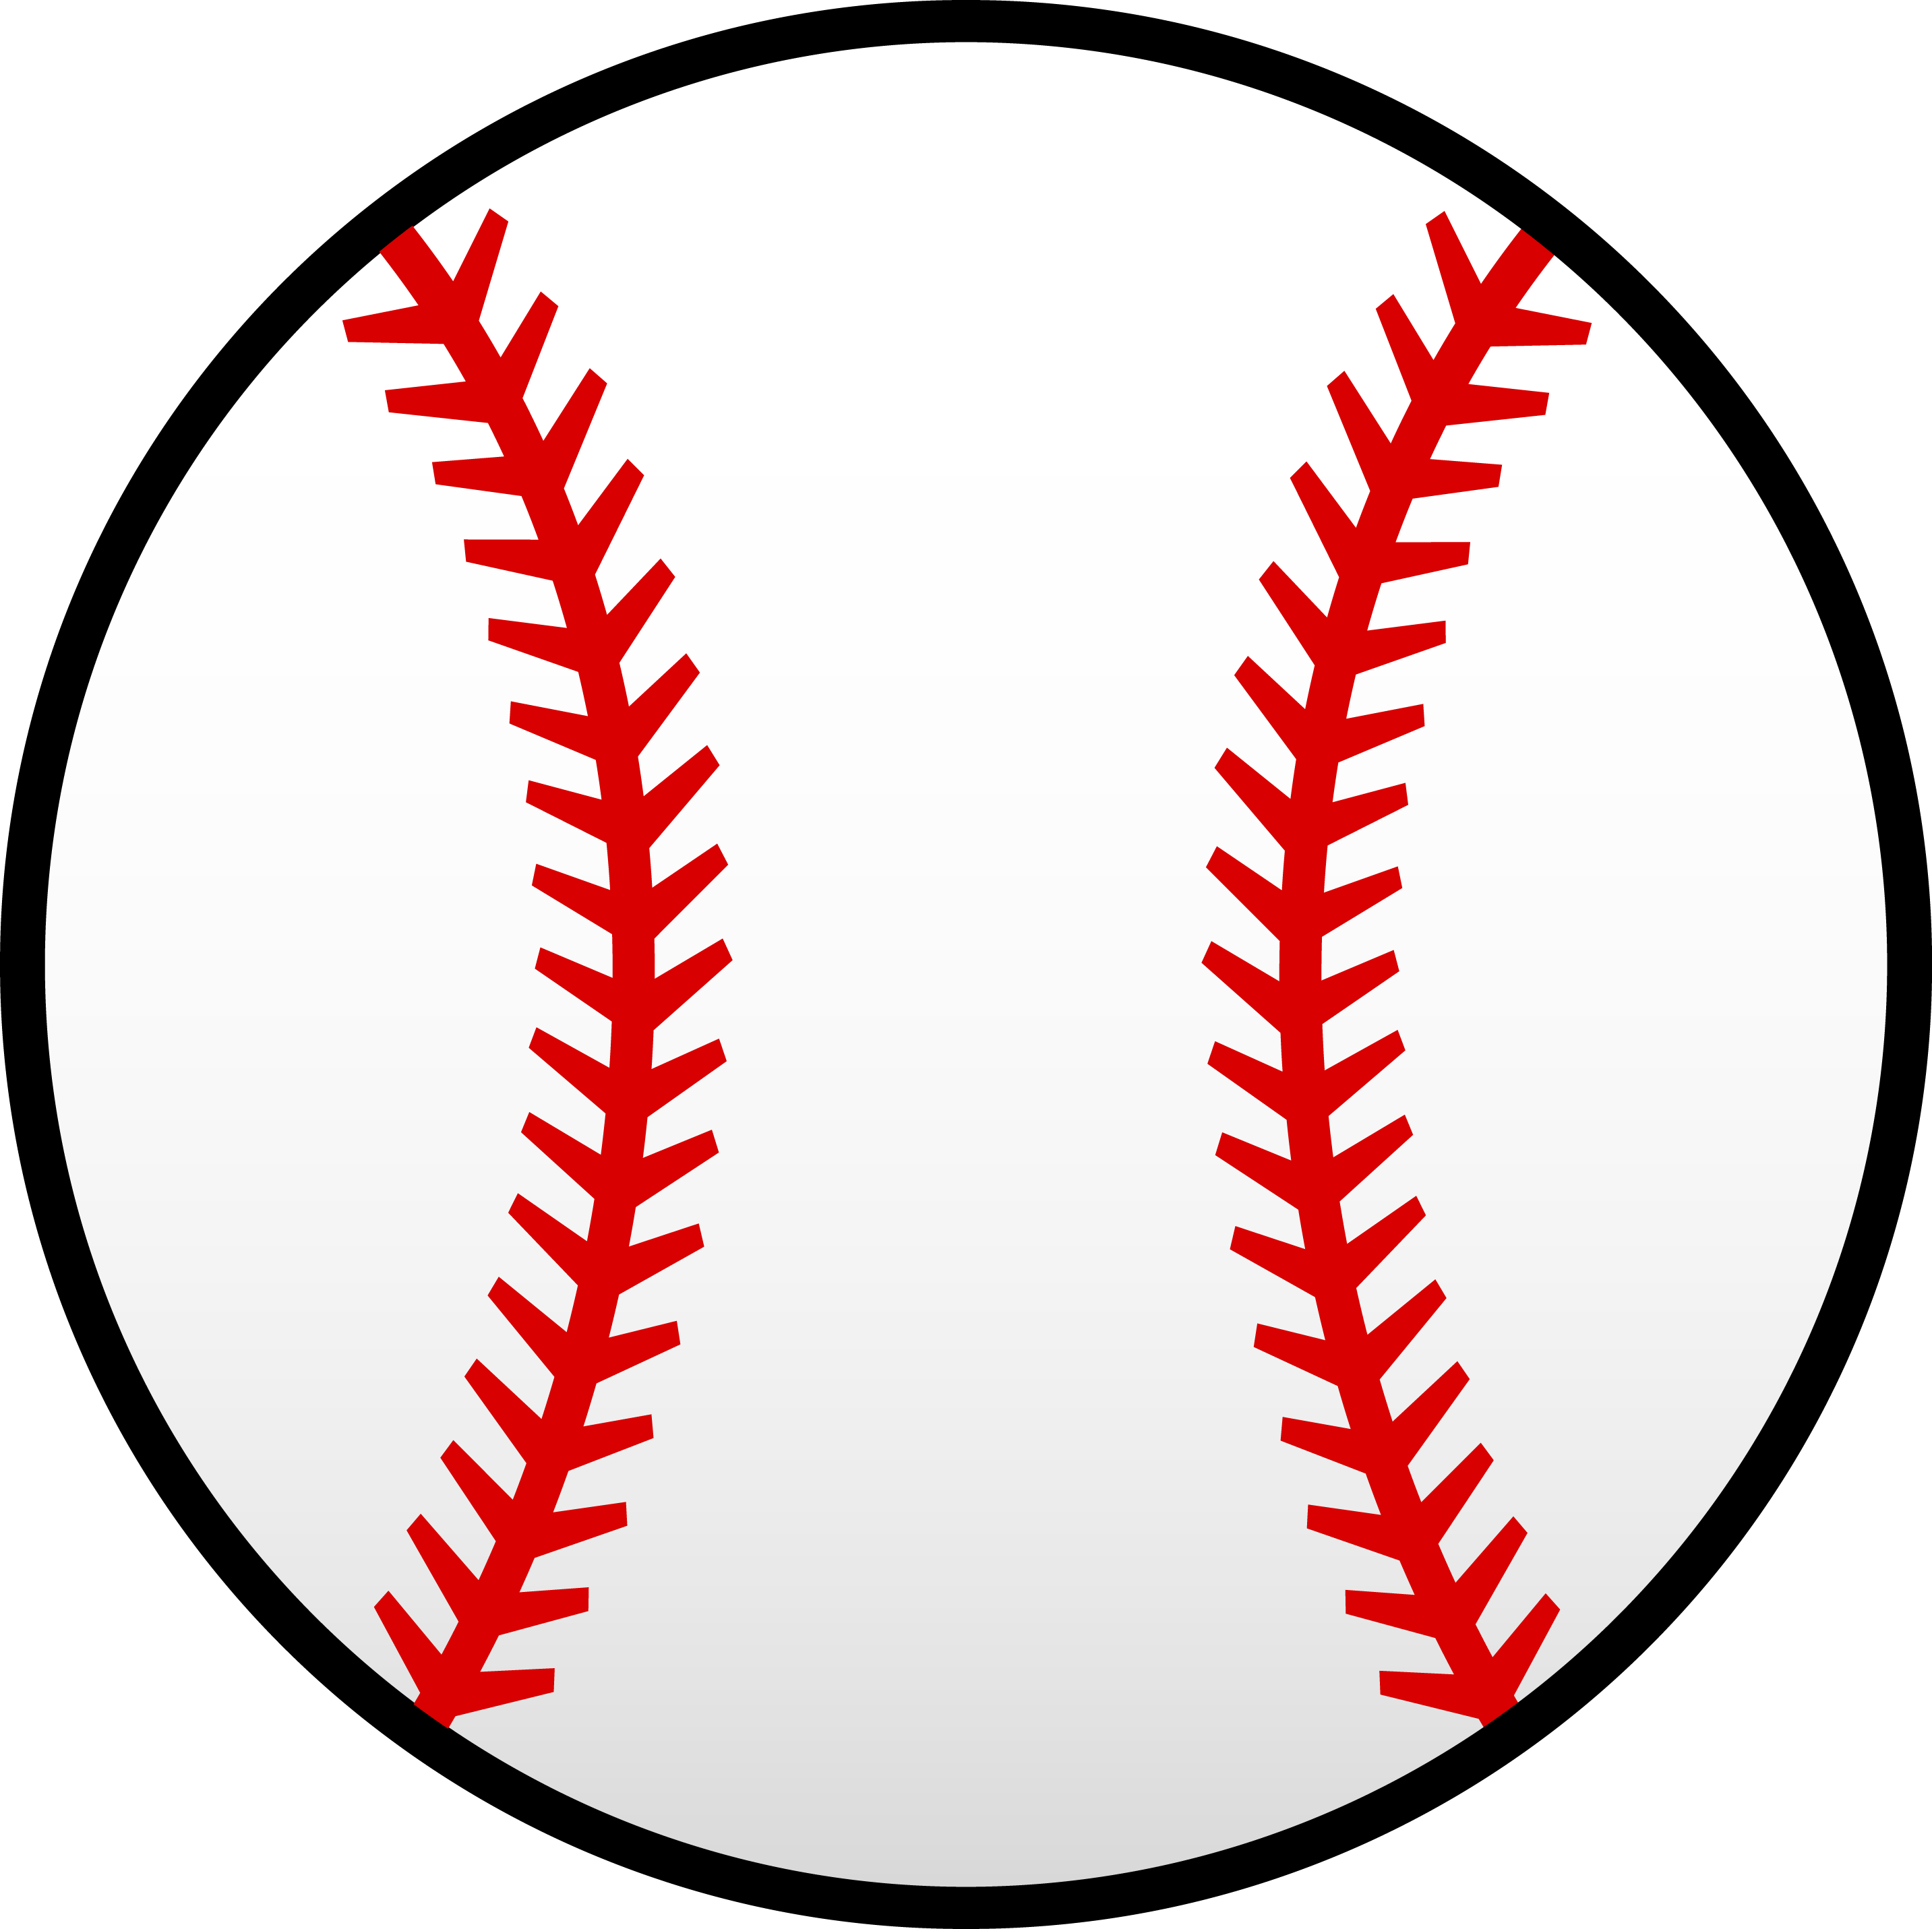 Free baseball clipart jpg black and white Baseball Pattern | White Baseball With Red Seams - Free Clip Art ... jpg black and white